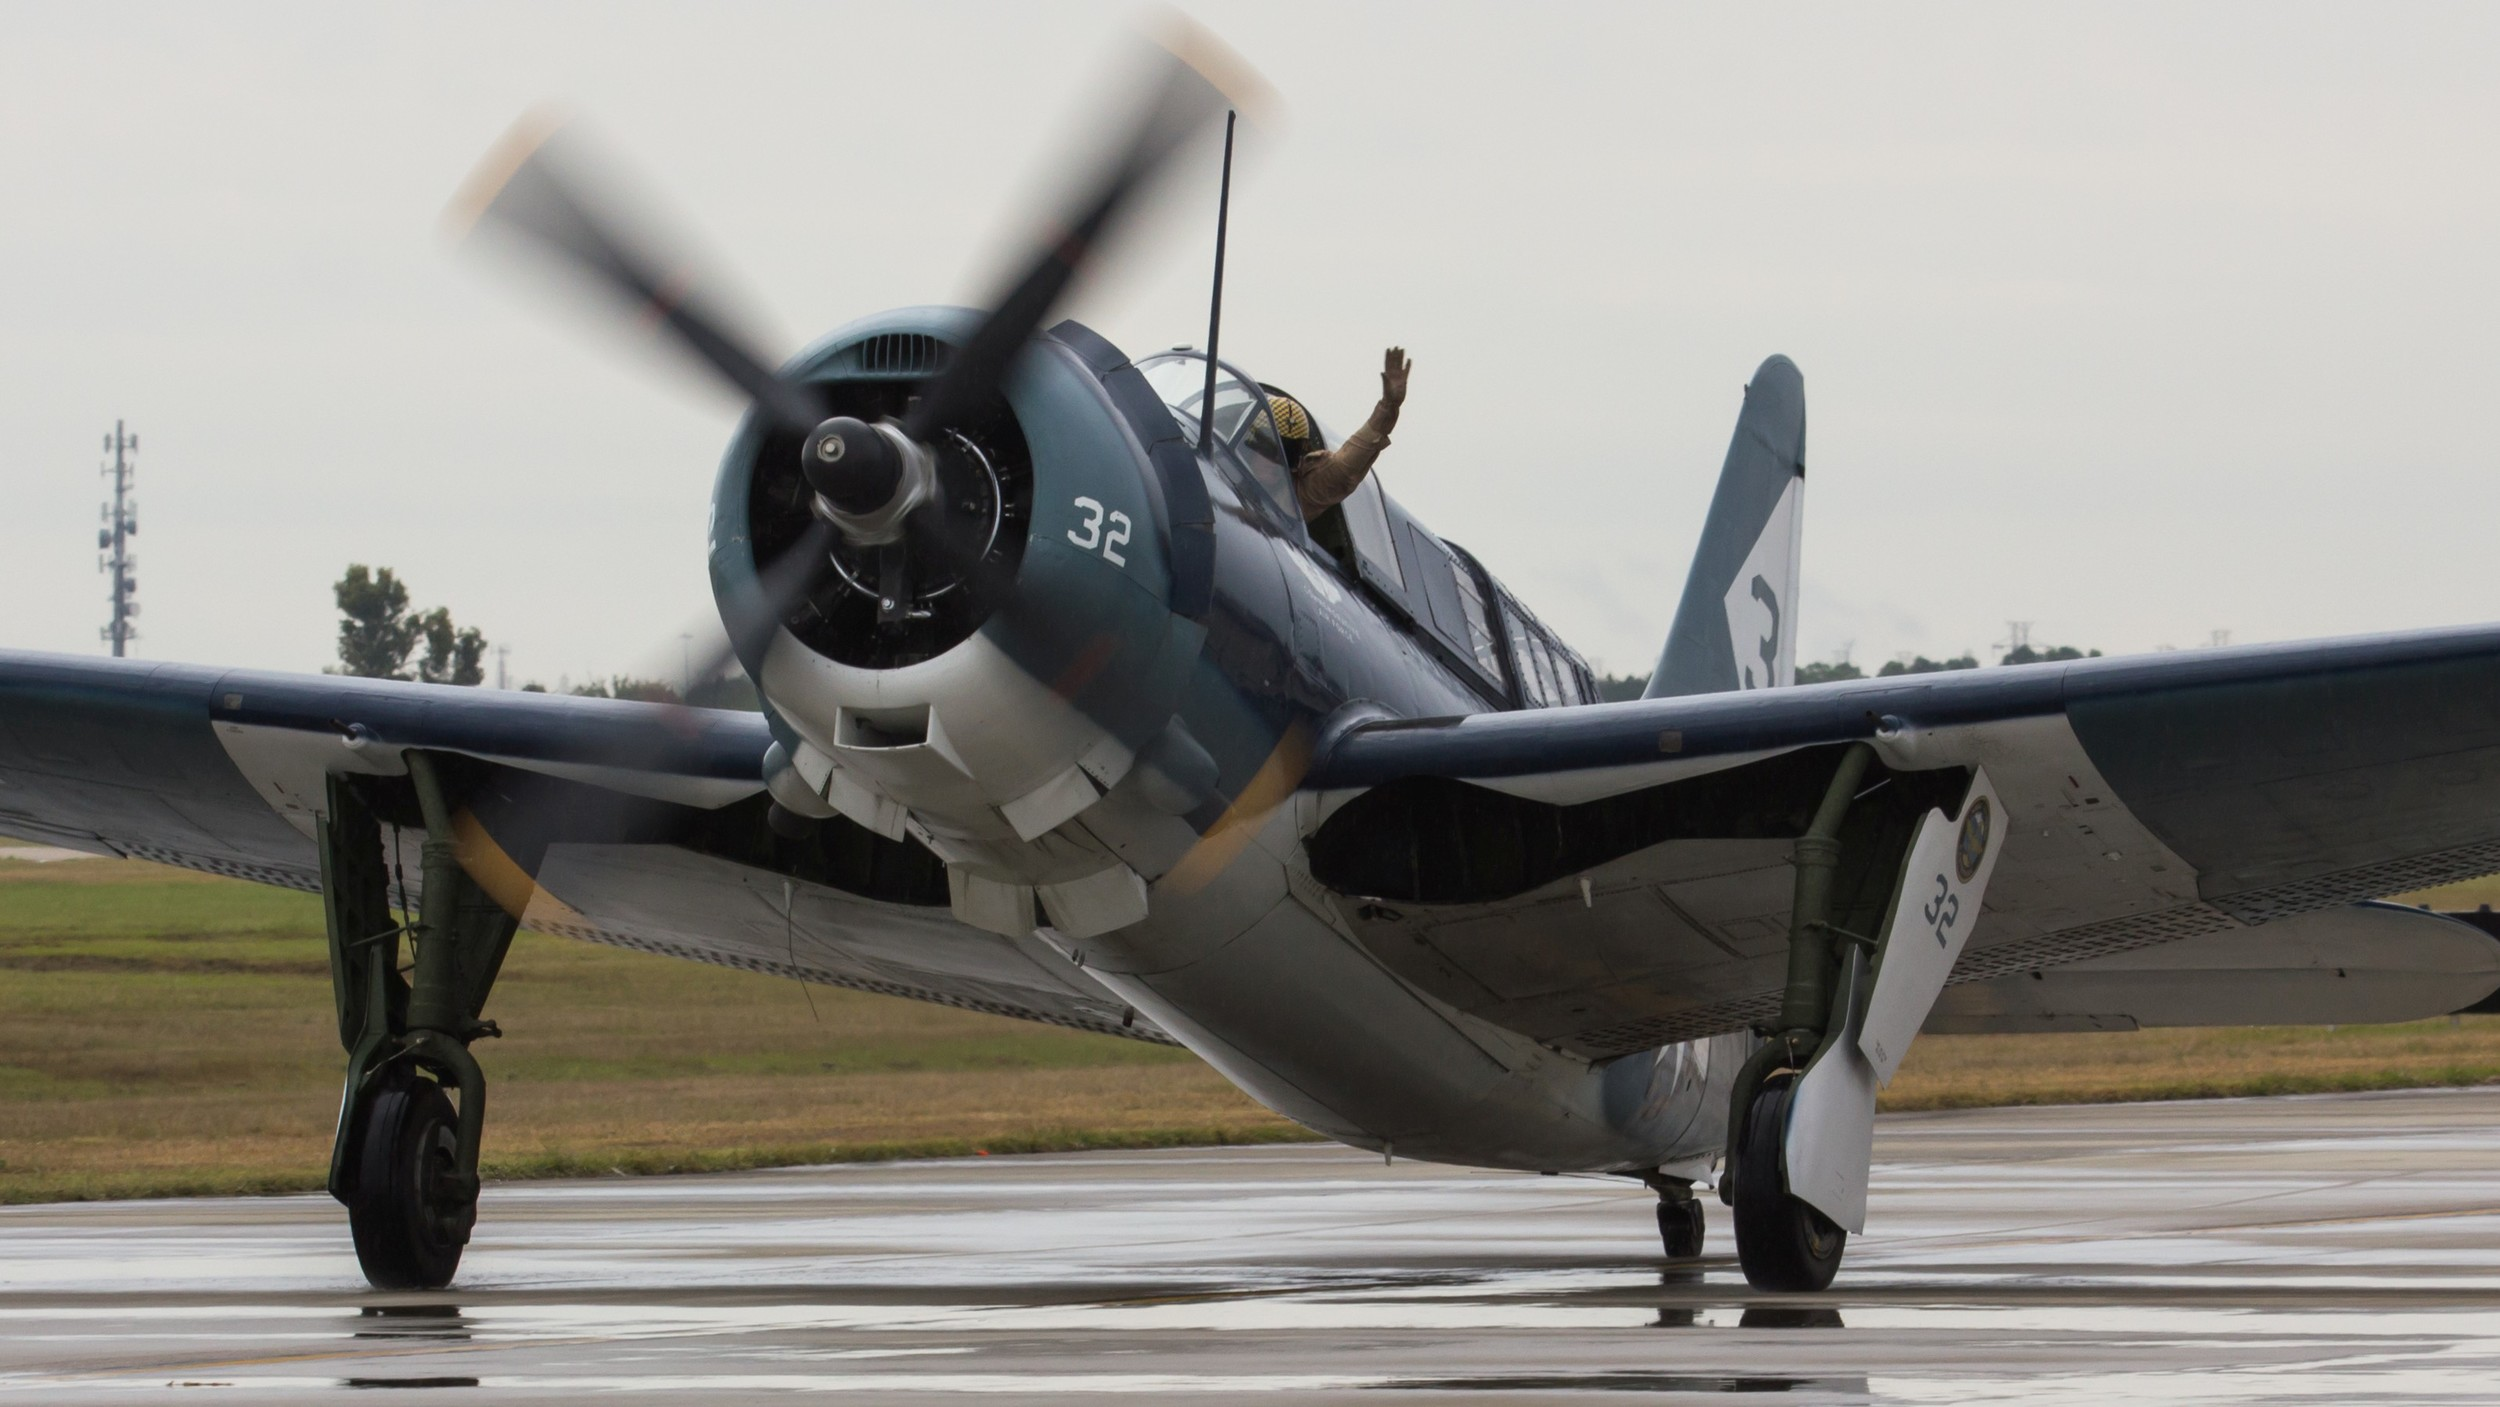 How often do you get to see a recent picture of an SB2C Helldiver? Trust me, it's not often.